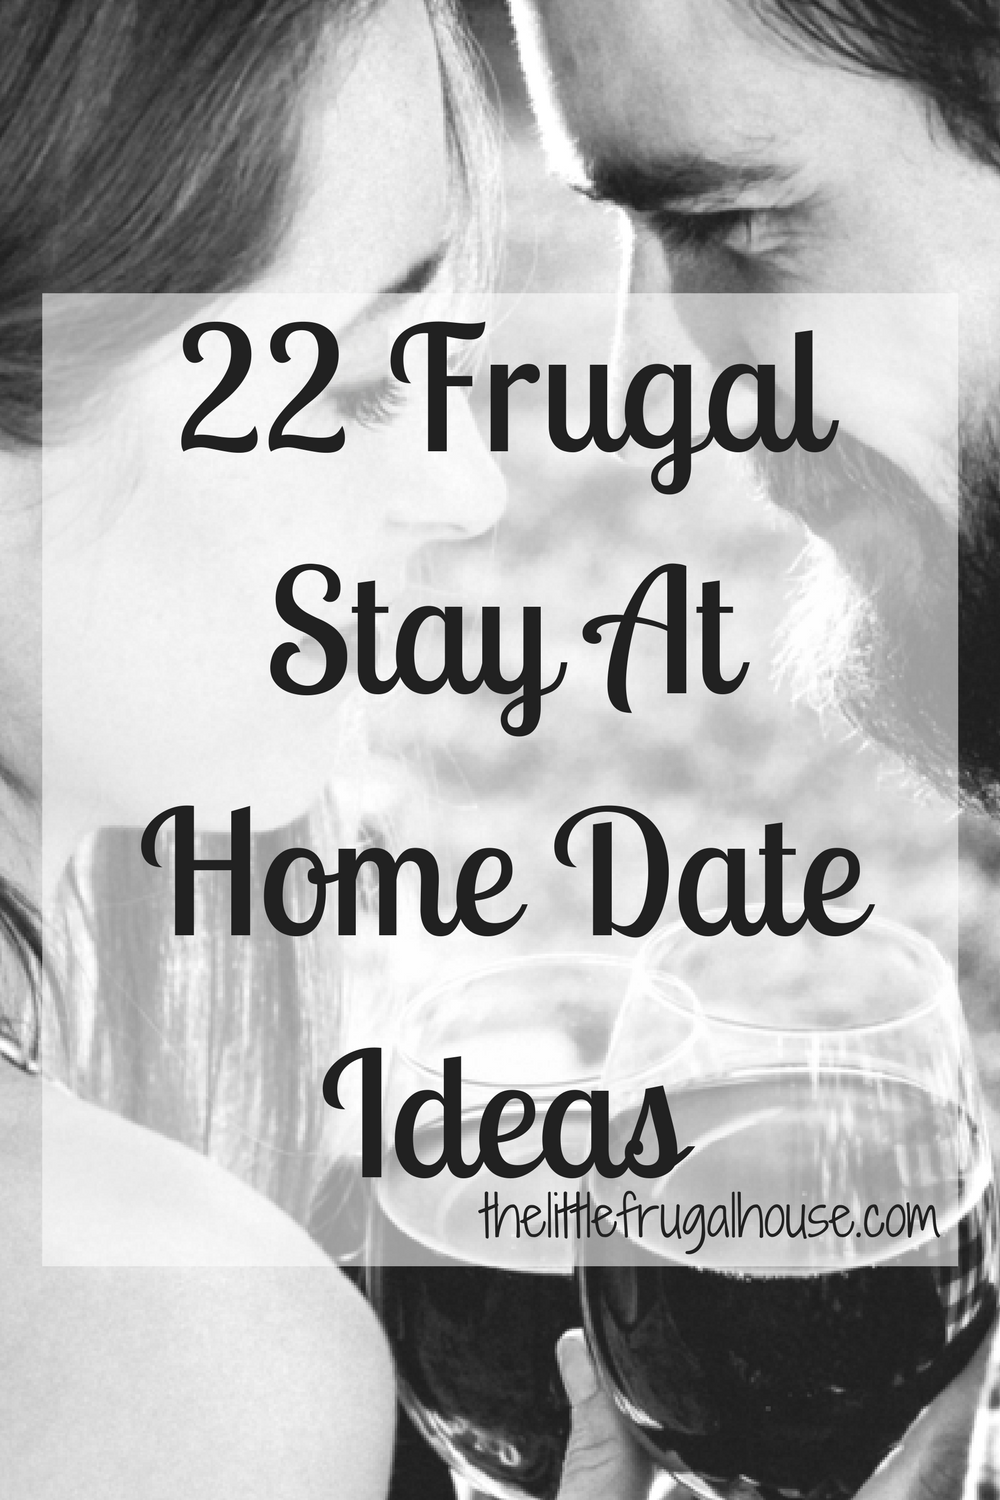 22 Frugal Stay At Home Date Ideas - The Little Frugal House